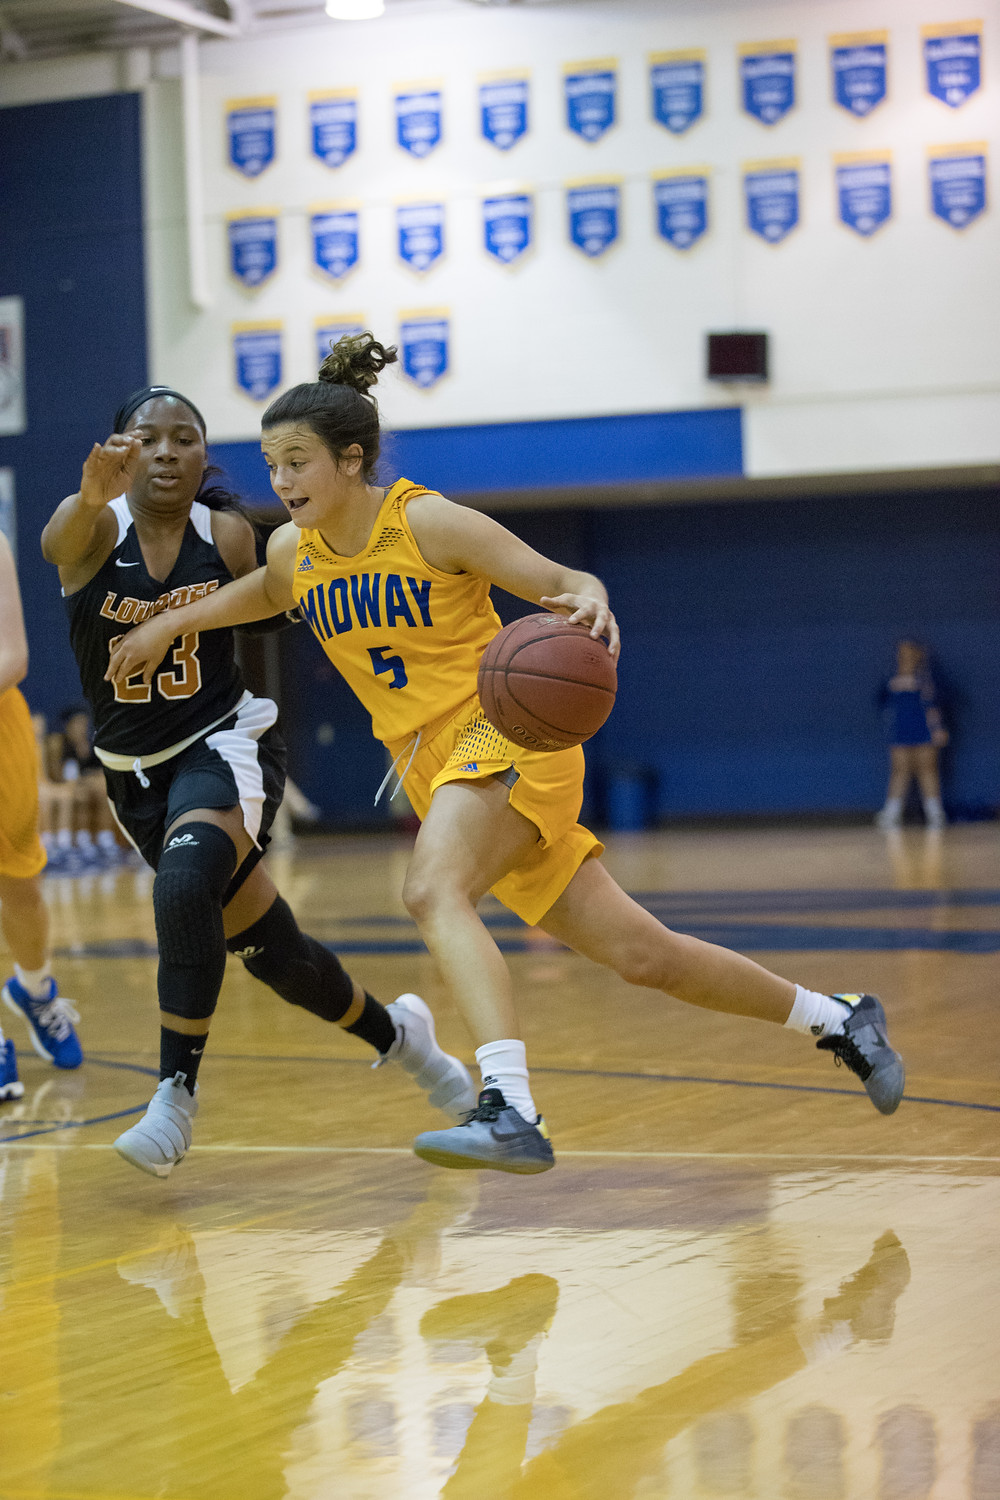 HALEIGH YAZELL, a sophomore from Paris, Ky., hit 6-of-9 from the three point line to lead Midway with 21 points in their 69-53 victory over Asbury University last Saturday